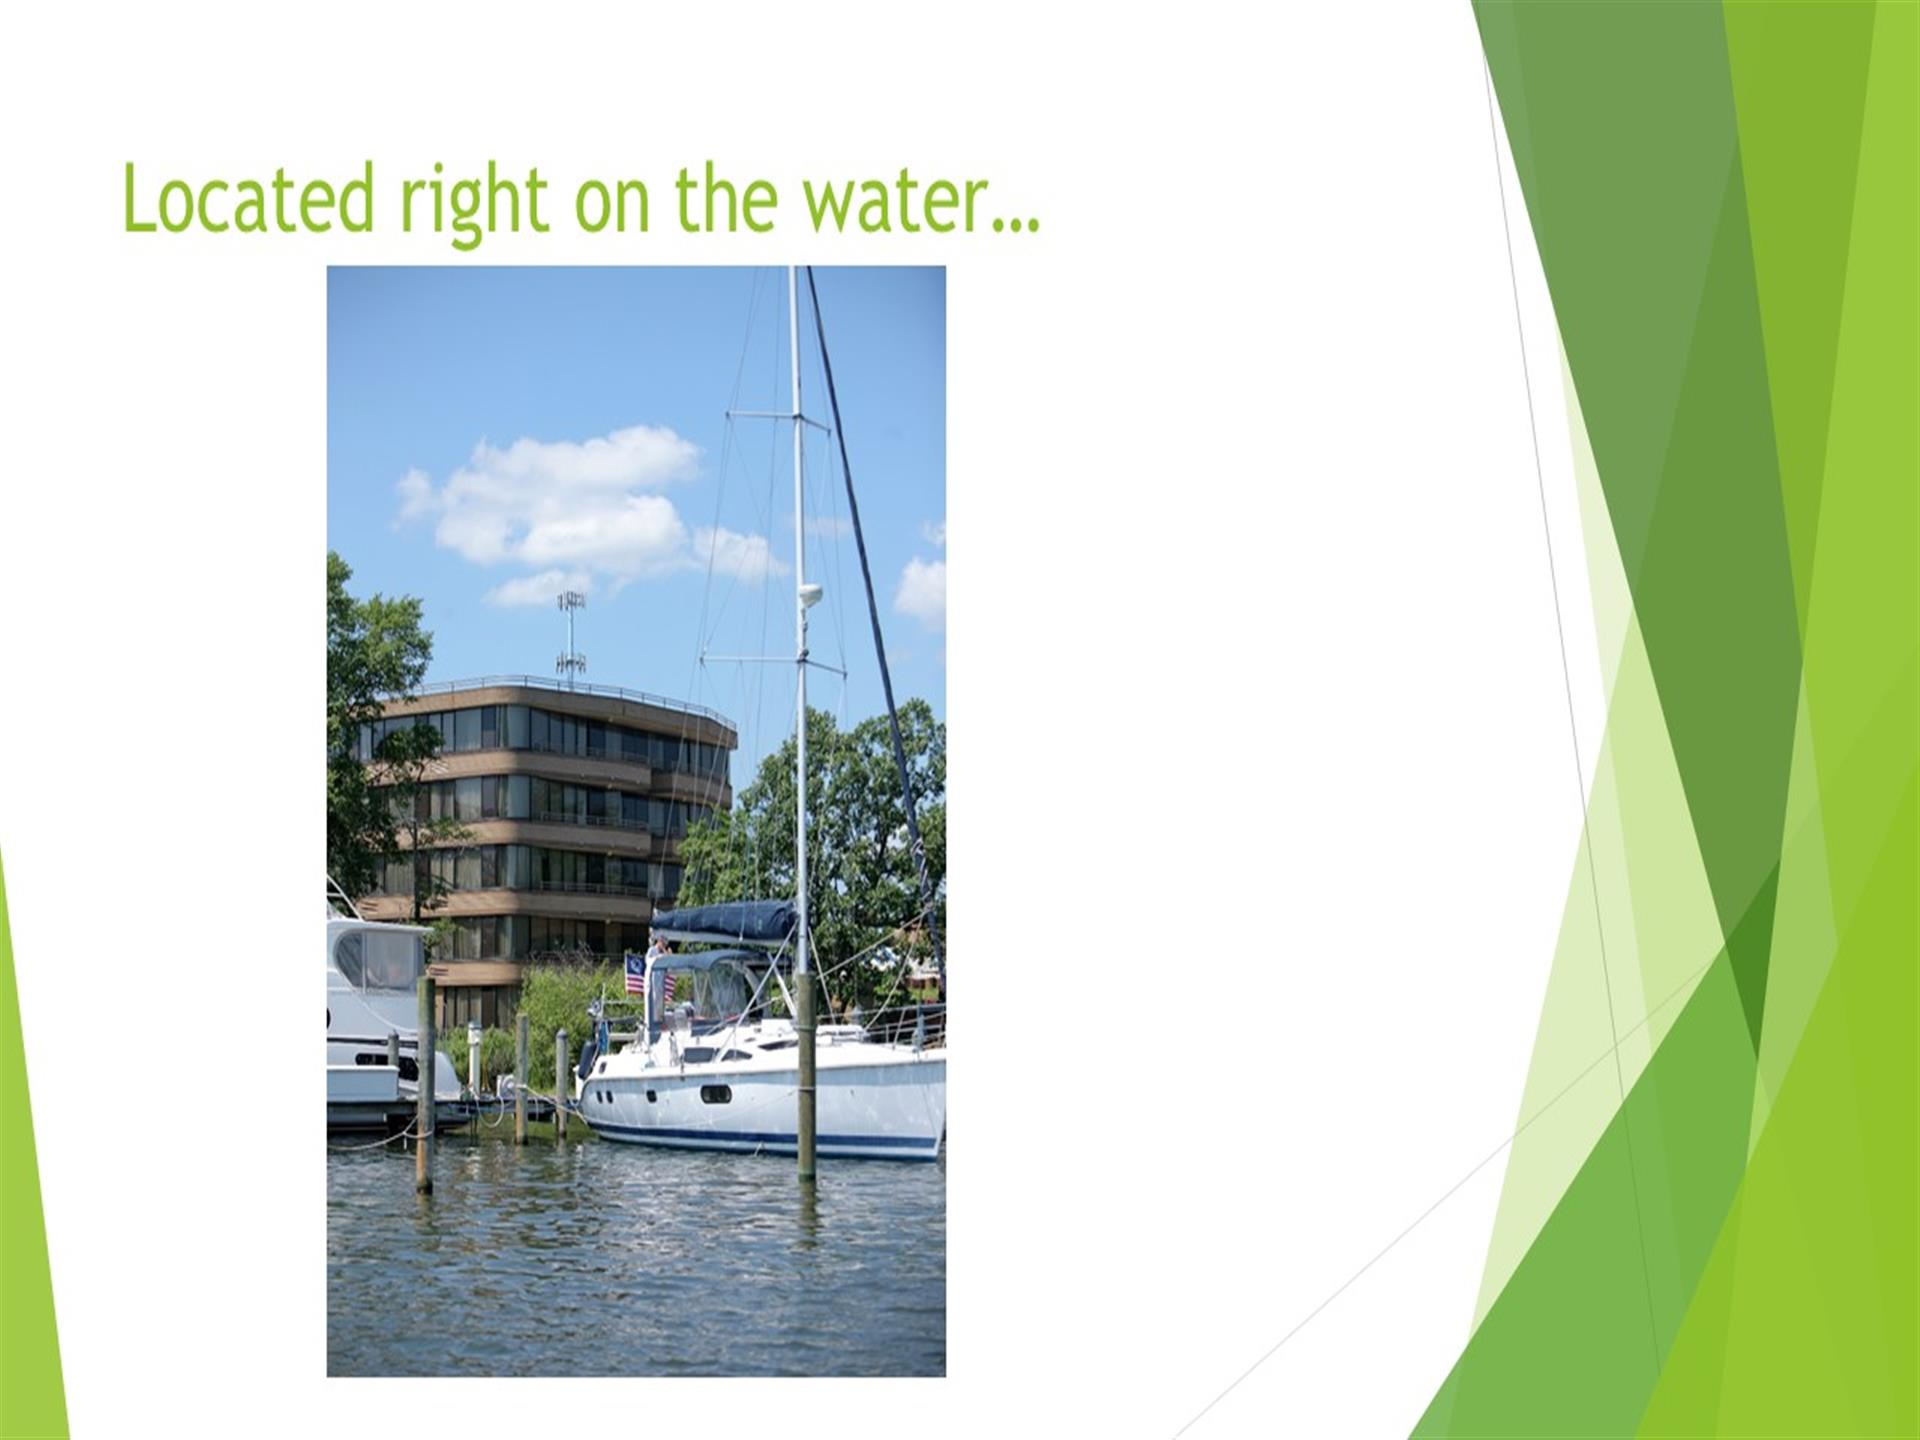 Located right on the water - hotel overlooking harbor and docked boats